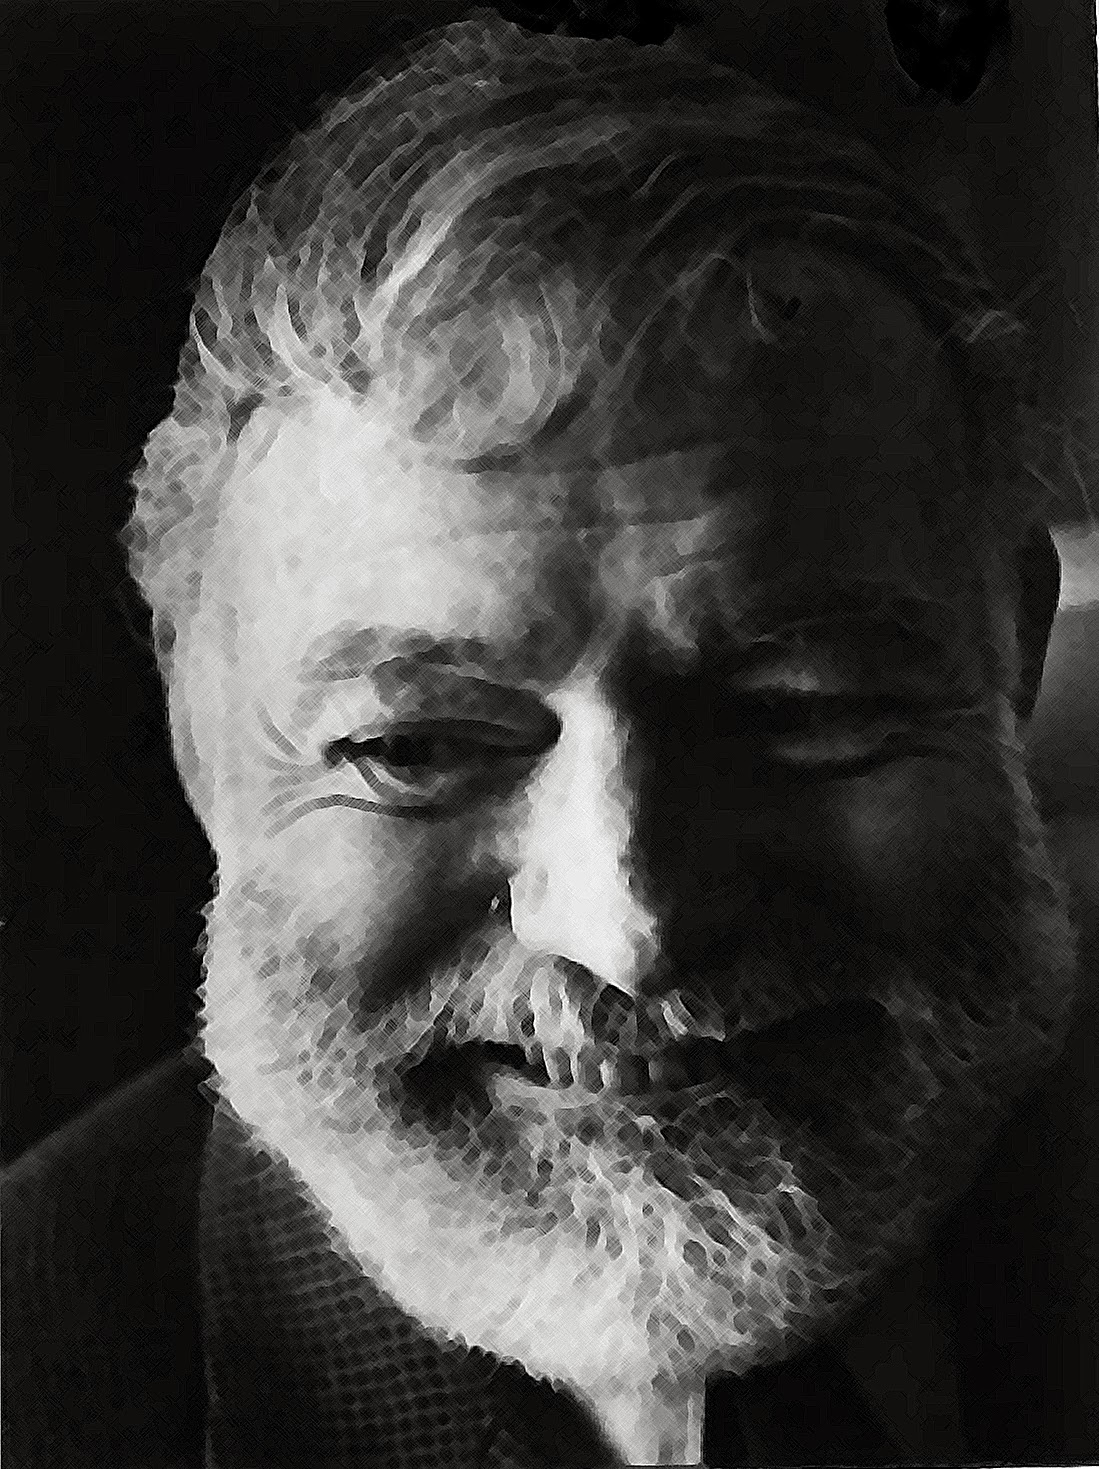 hemingway a days wait A day's wait is a short story by ernest hemingway published in his 1933 short  story collection winner take nothing about a nine-year-old boy who is sick.